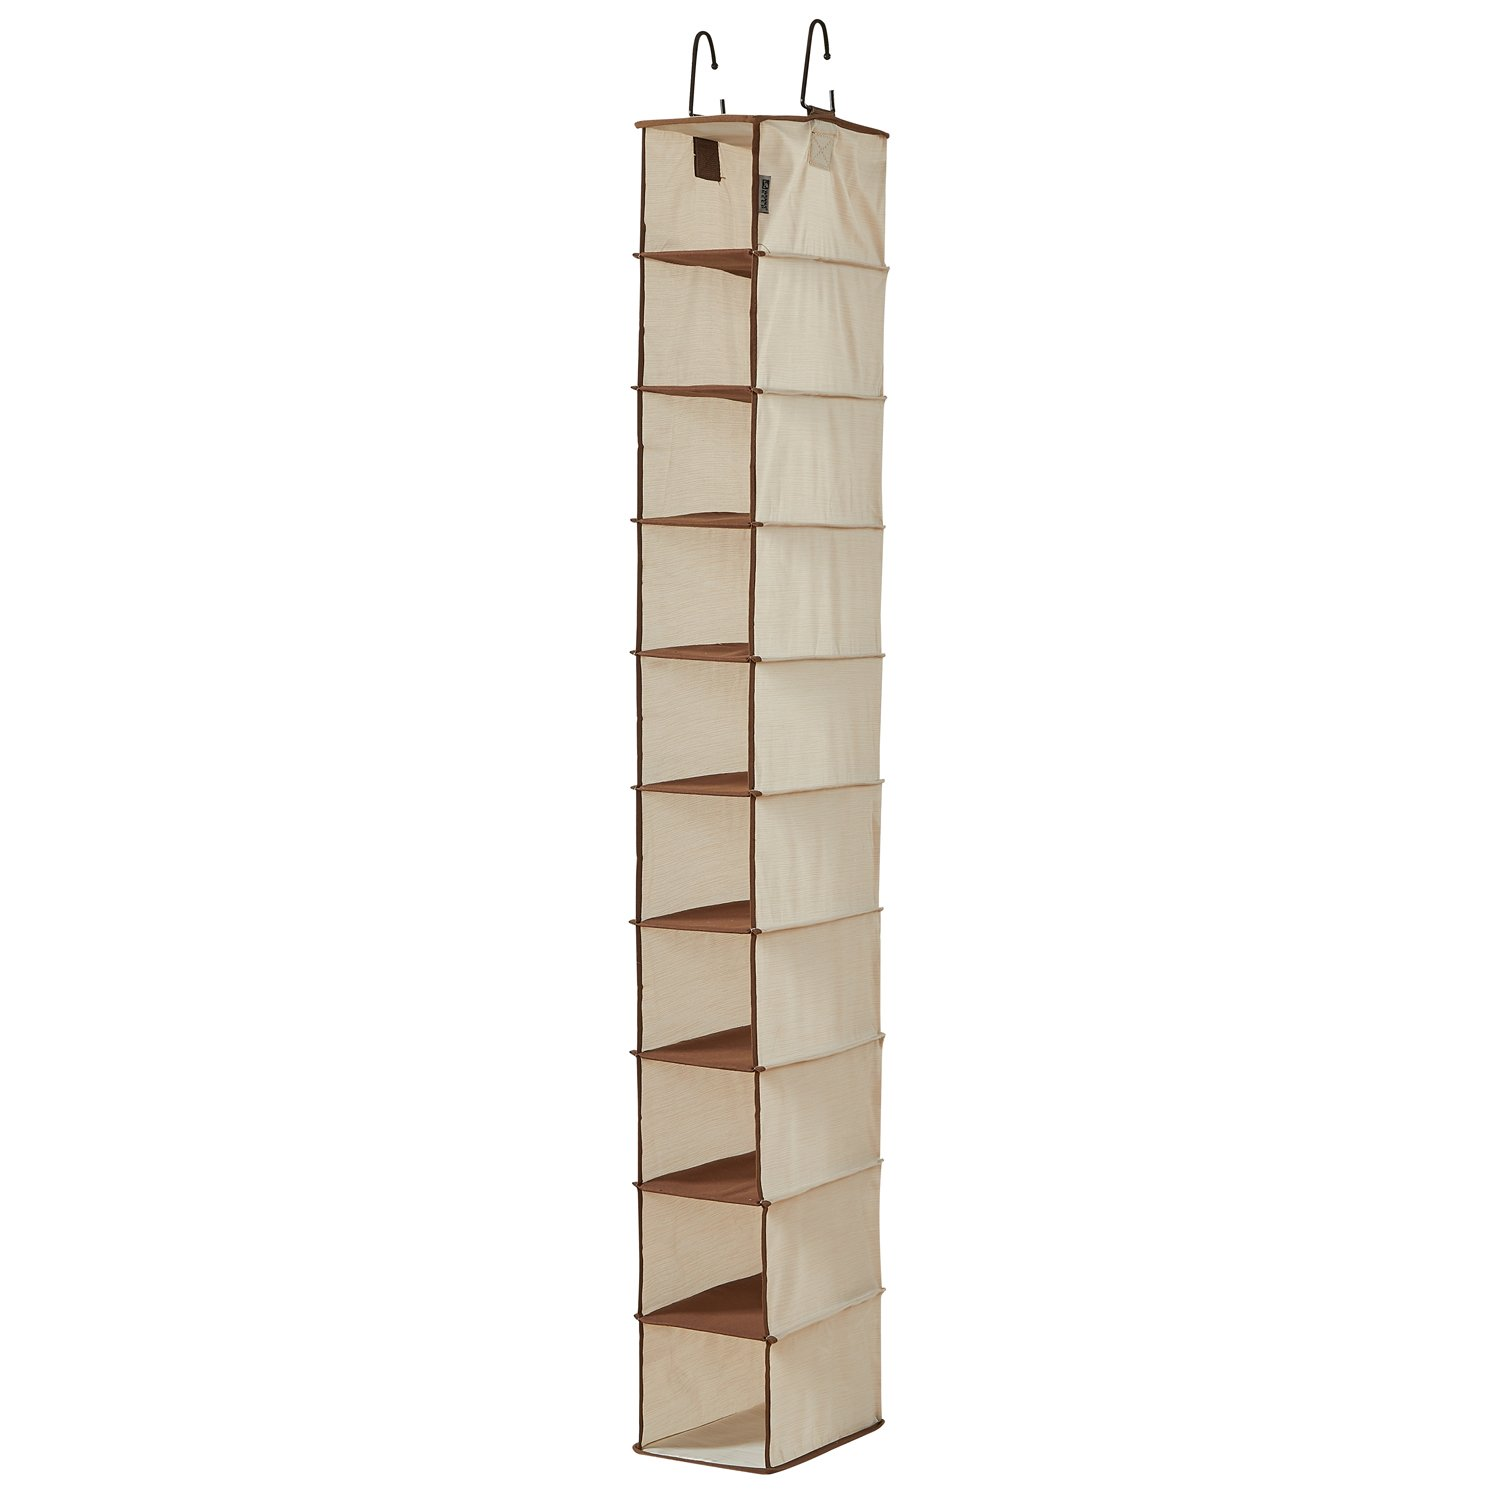 WANNAKEEP 10 Shelf Hanging Shoe Organizer, Shoe Holder Closet, 10 Mesh Pockets Accessories, Breathable Polyester Cotton, 5.5x11x54 inches Beige